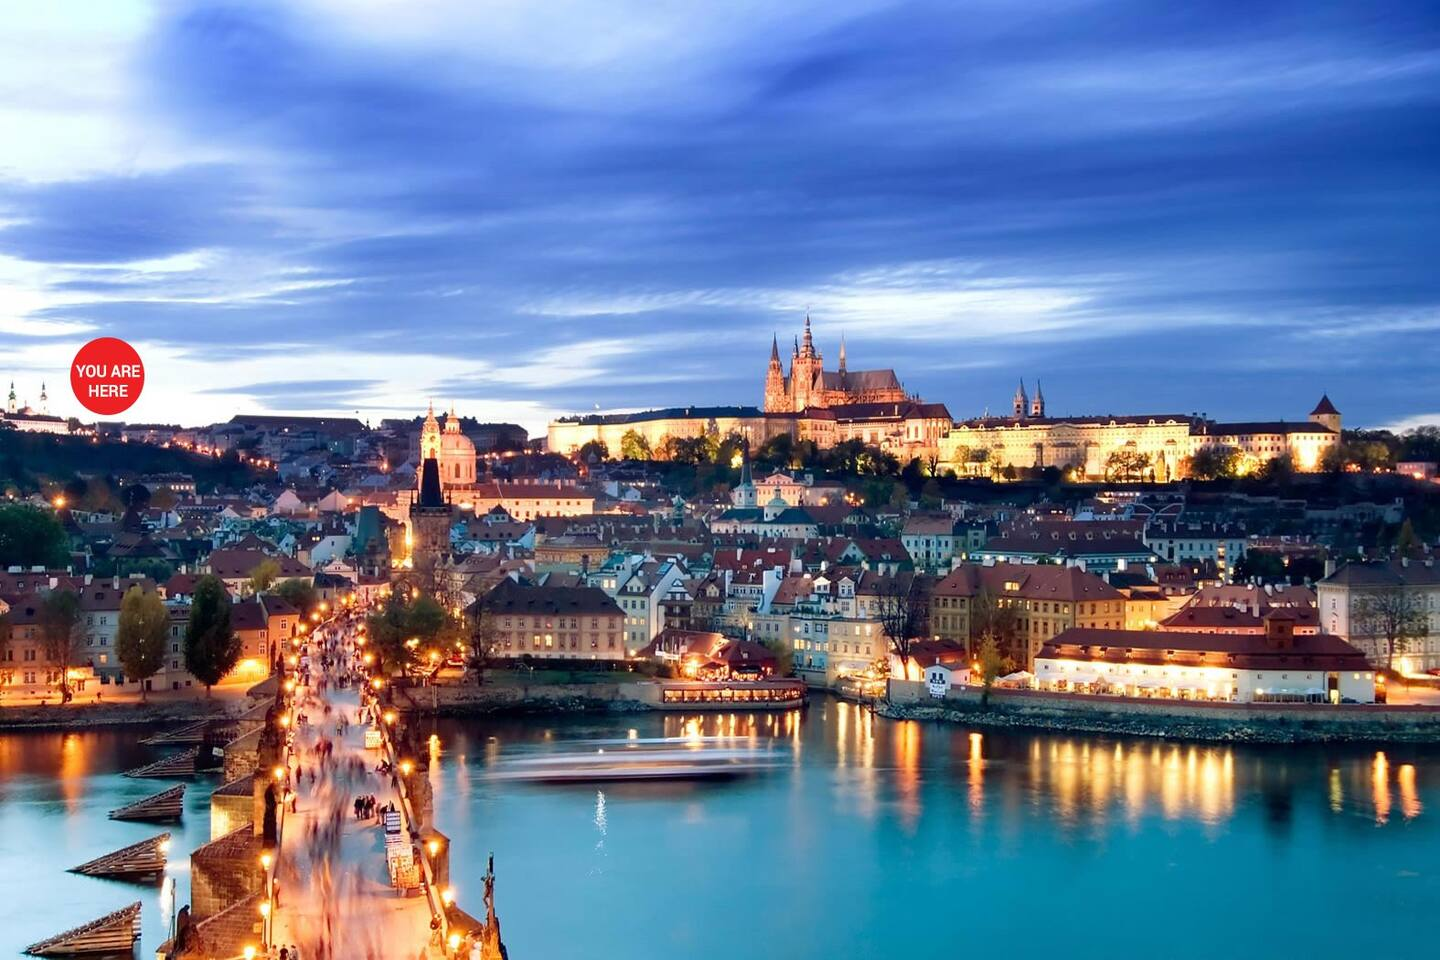 Our apartment/flat is right near the Prague Castle & short walk to Charles Bridge.